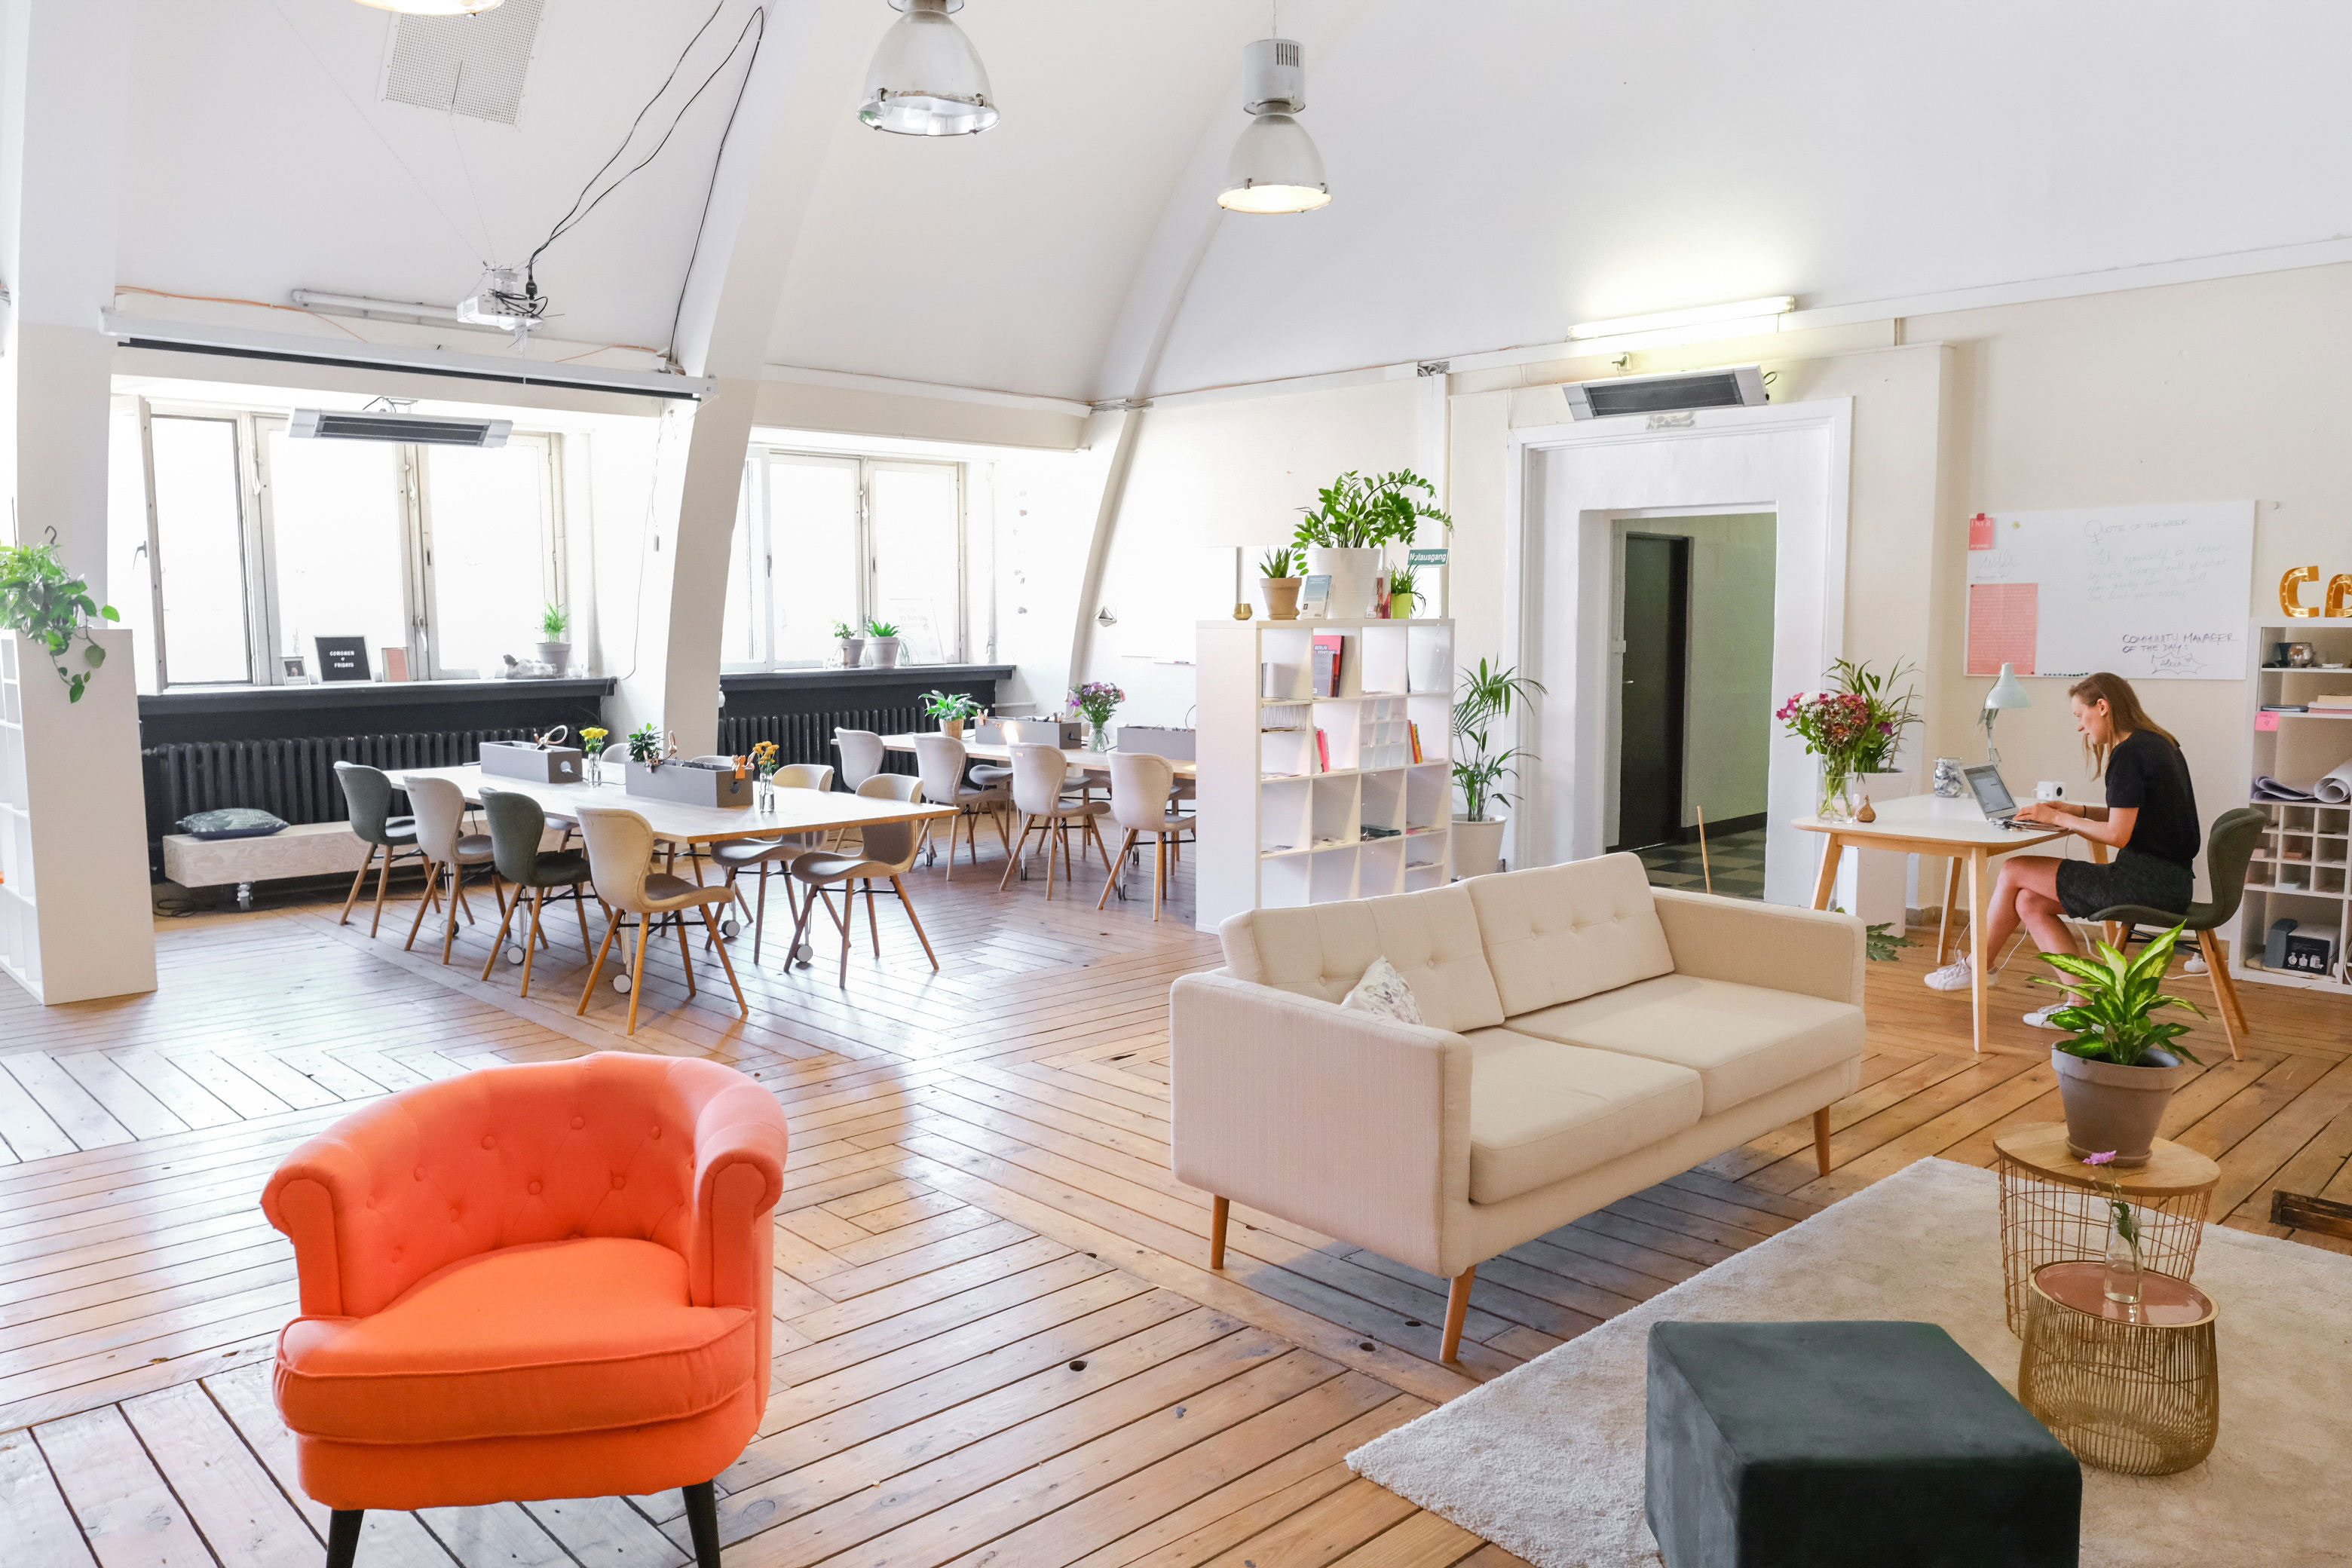 Co-living spaces are disrupting Asia's real estate industry with a new way to look at modern office design